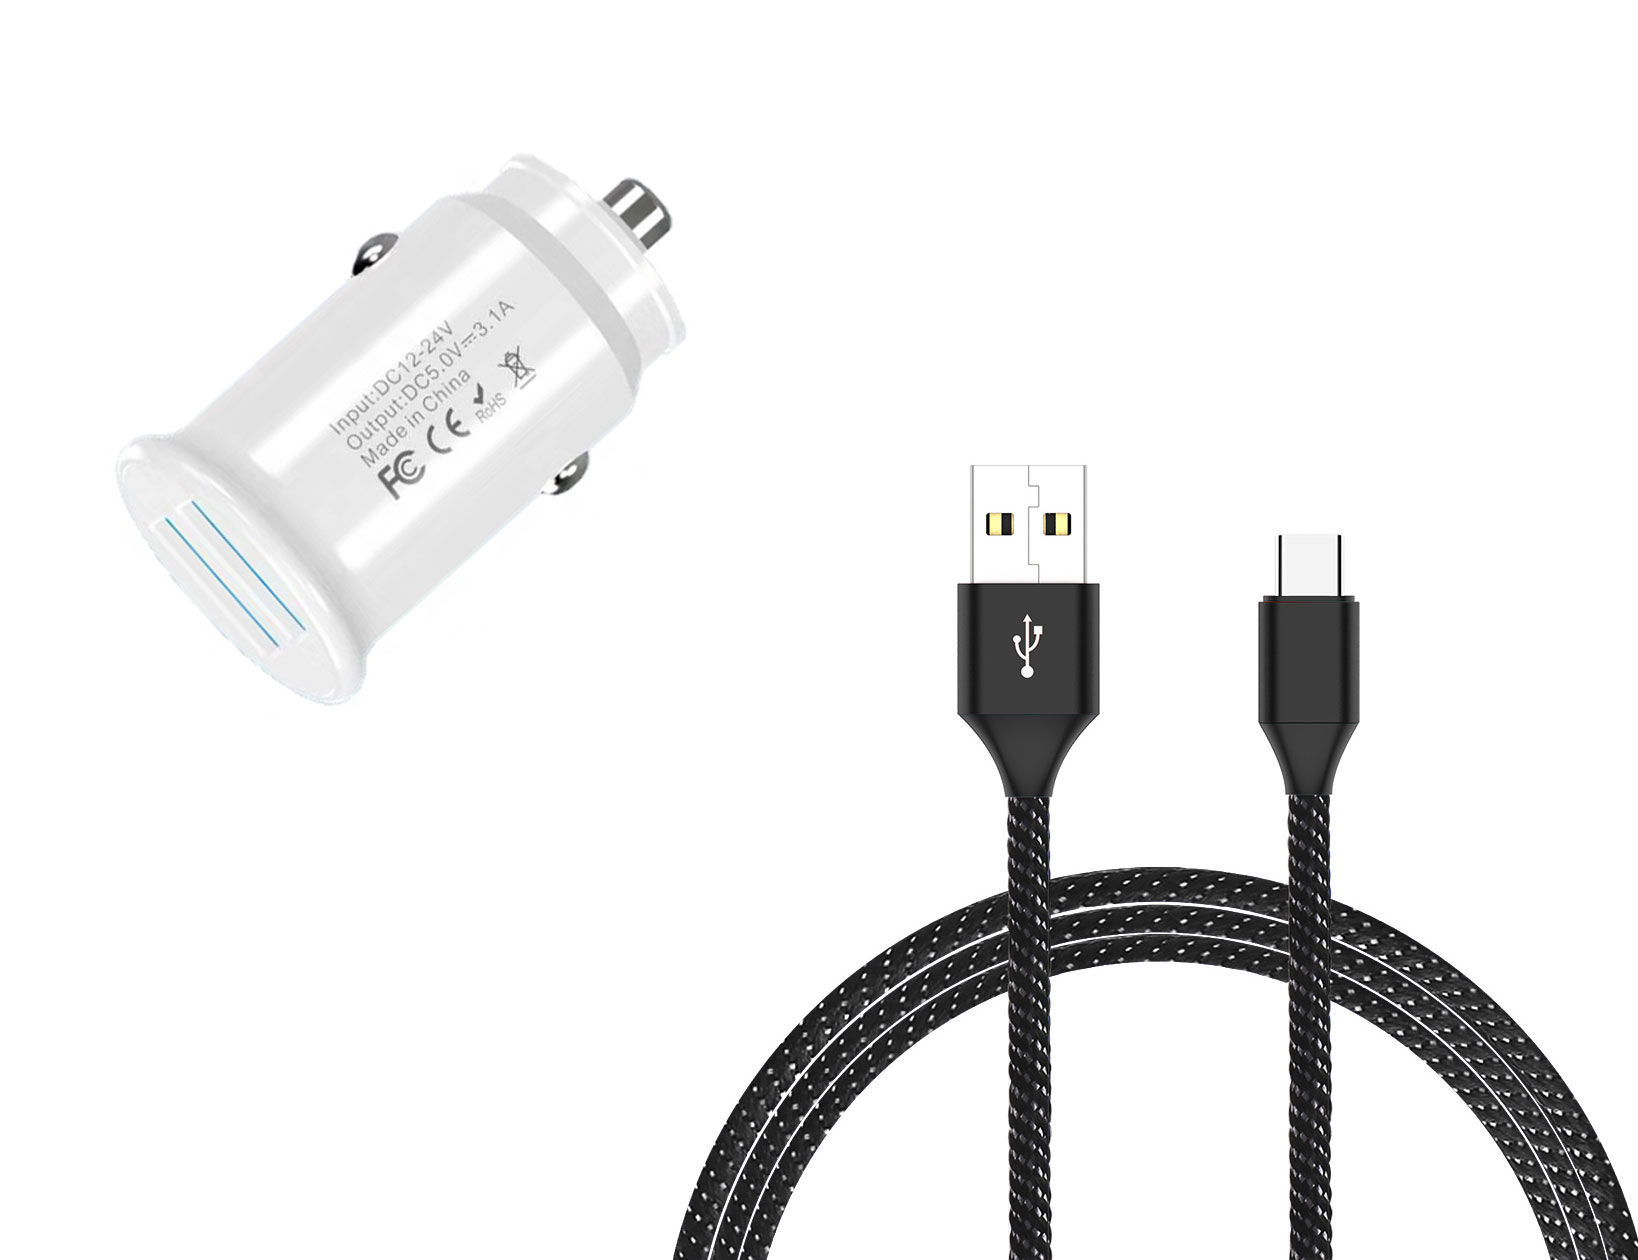 Amazon Fire HD 10 8th Gen USB TypeC Car Charger White 6ft Black Braided Cable